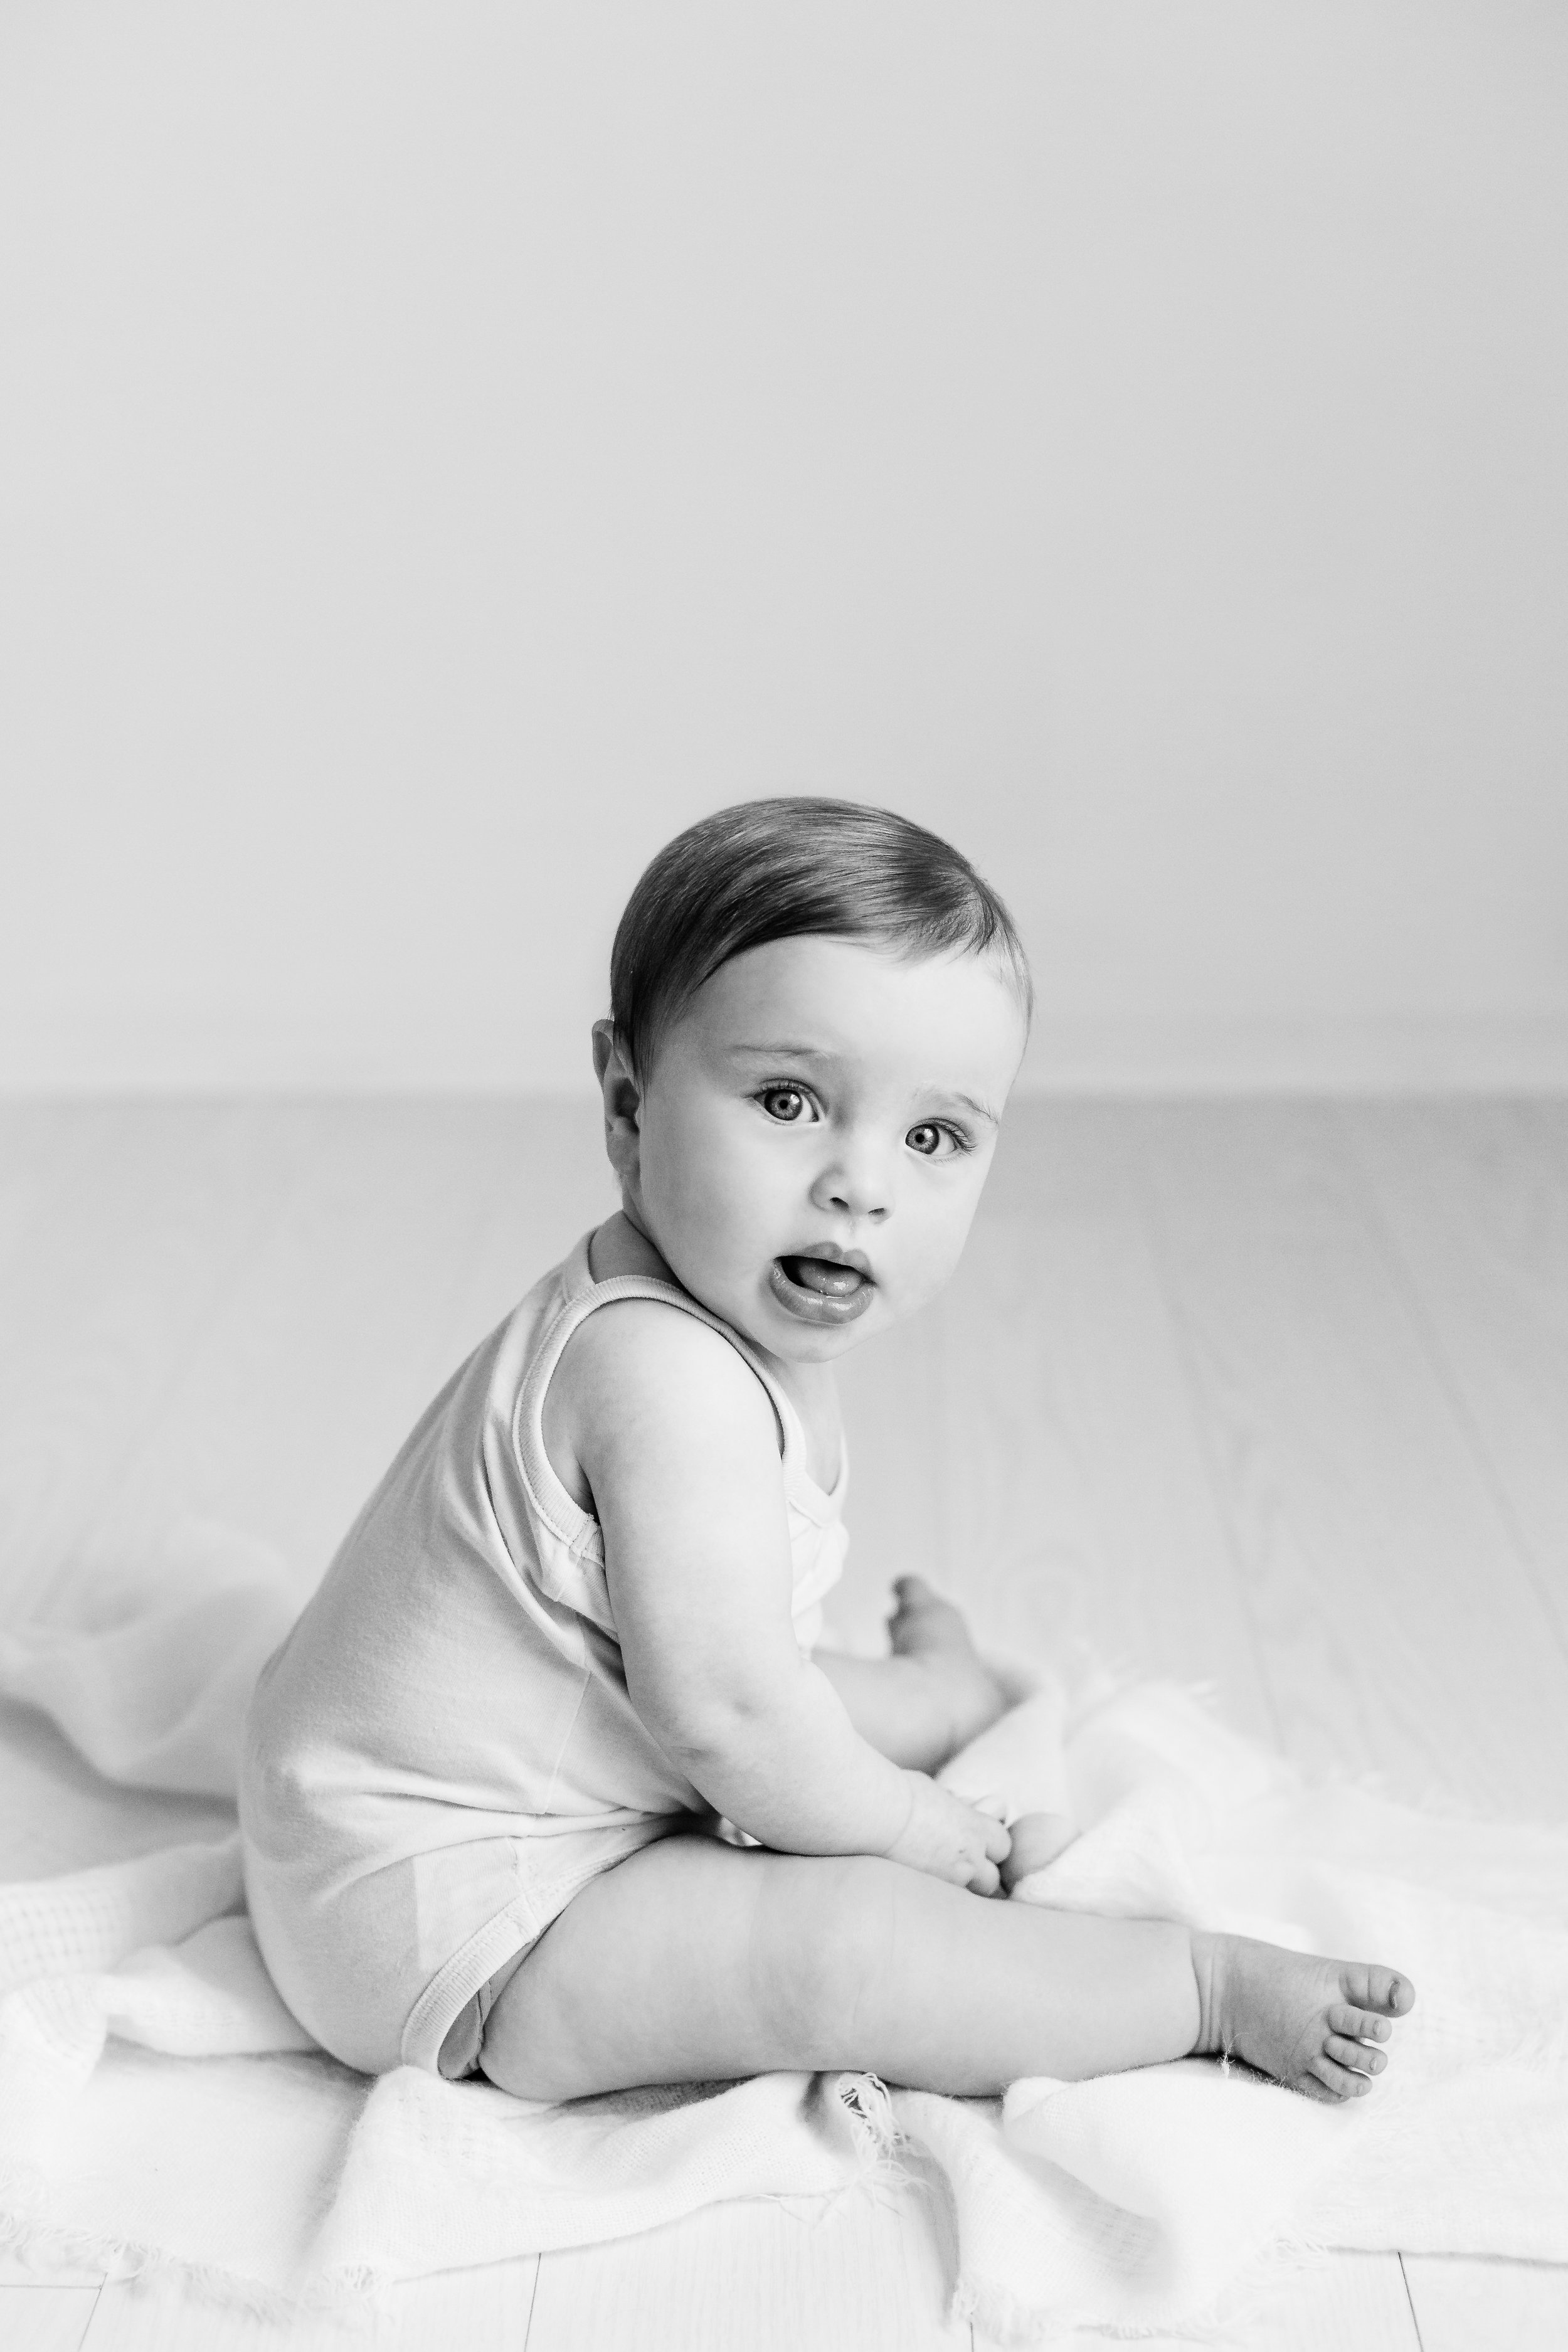 kayla-columbus-baby-photographer-2.jpg